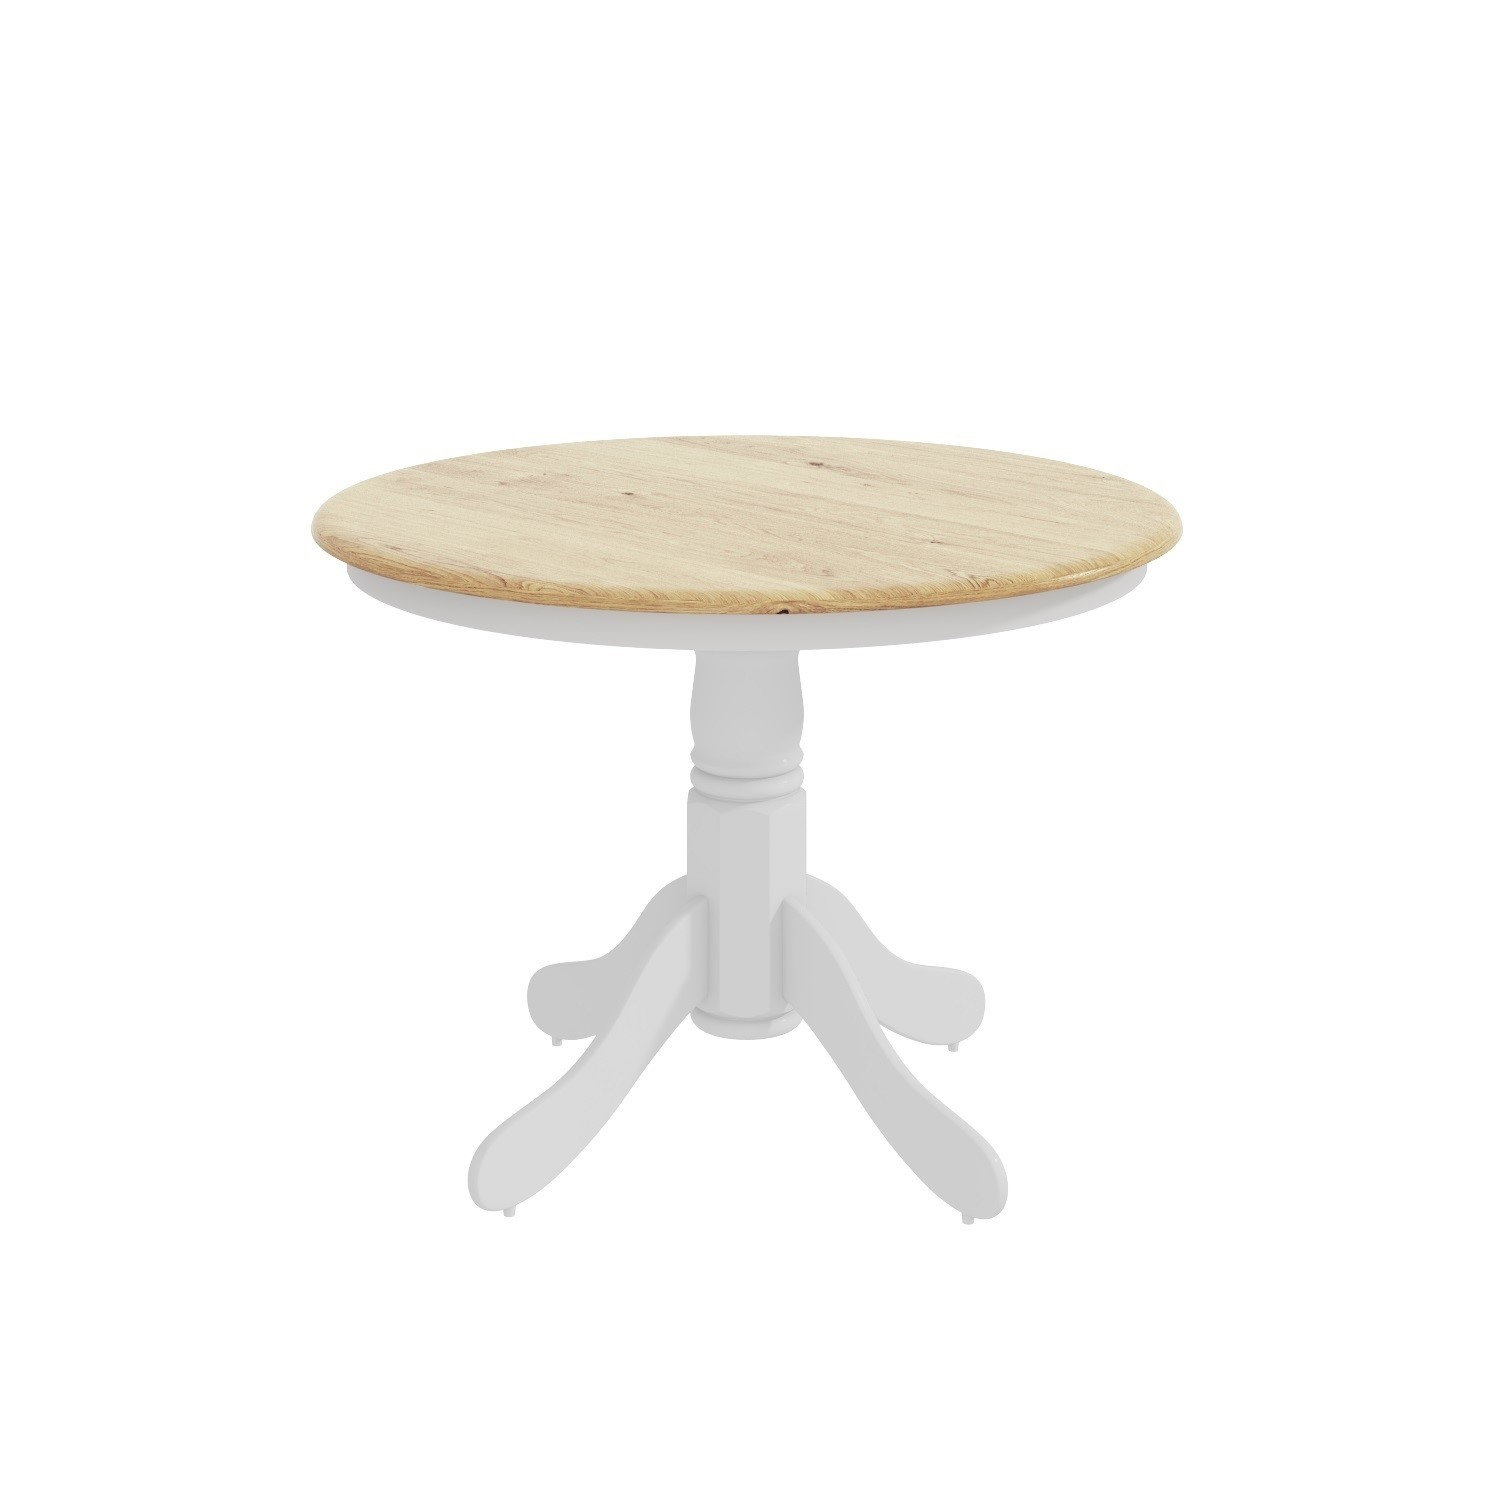 kitchen island table with 4 chairs rhode island natural white round kitchen dining table and 4 chairs set ebay 2395